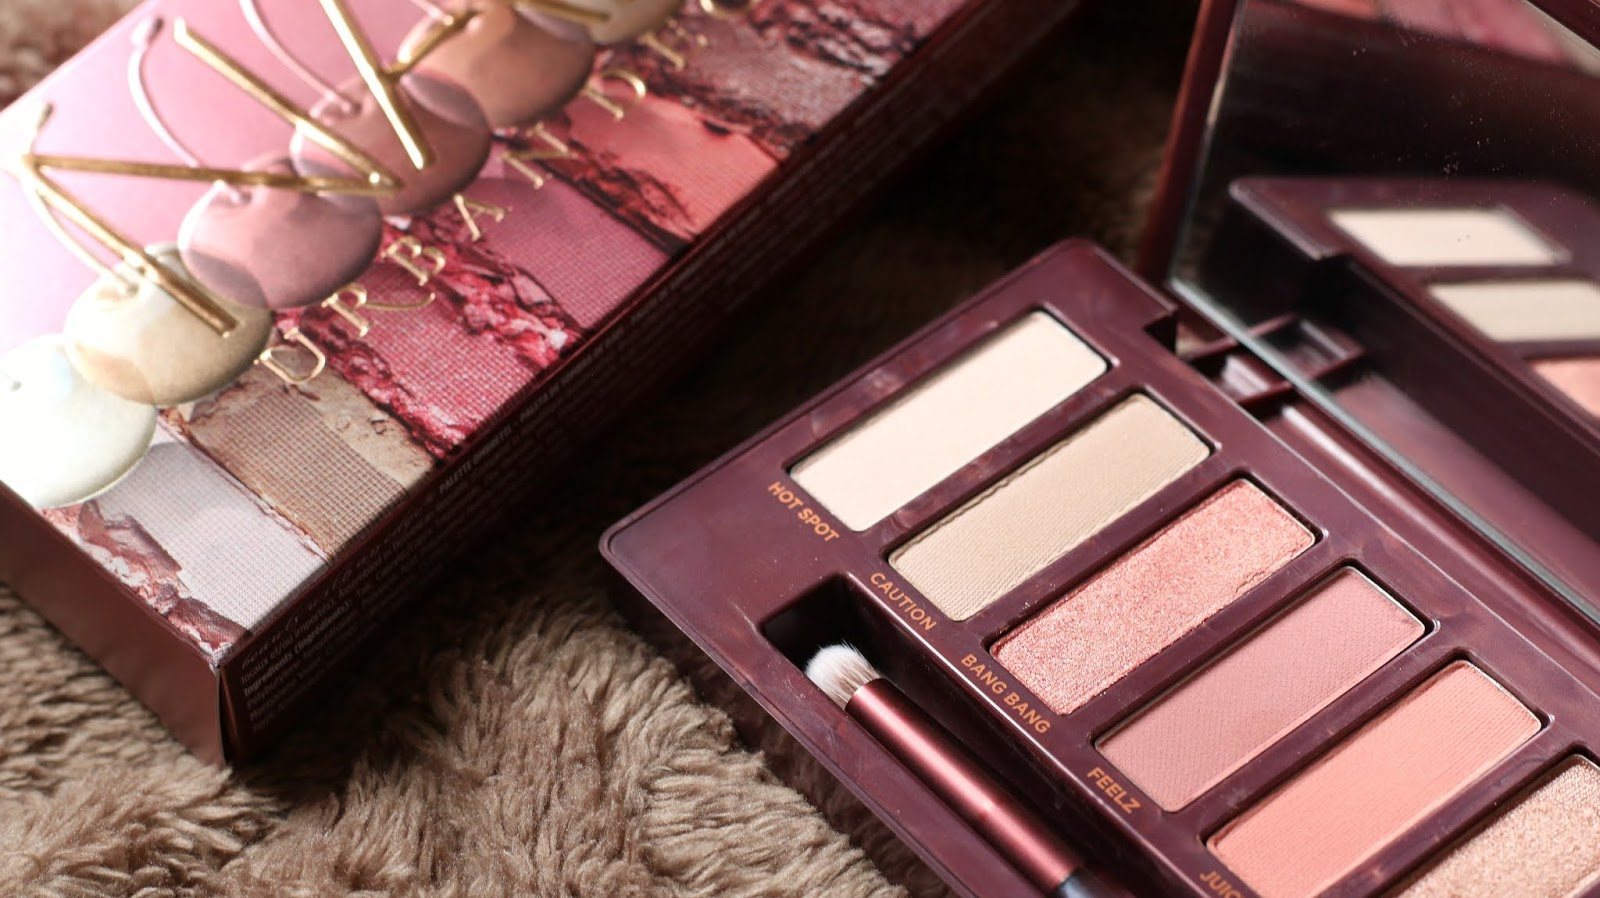 The new Urban Decay Naked Cherry has landed—heres a look